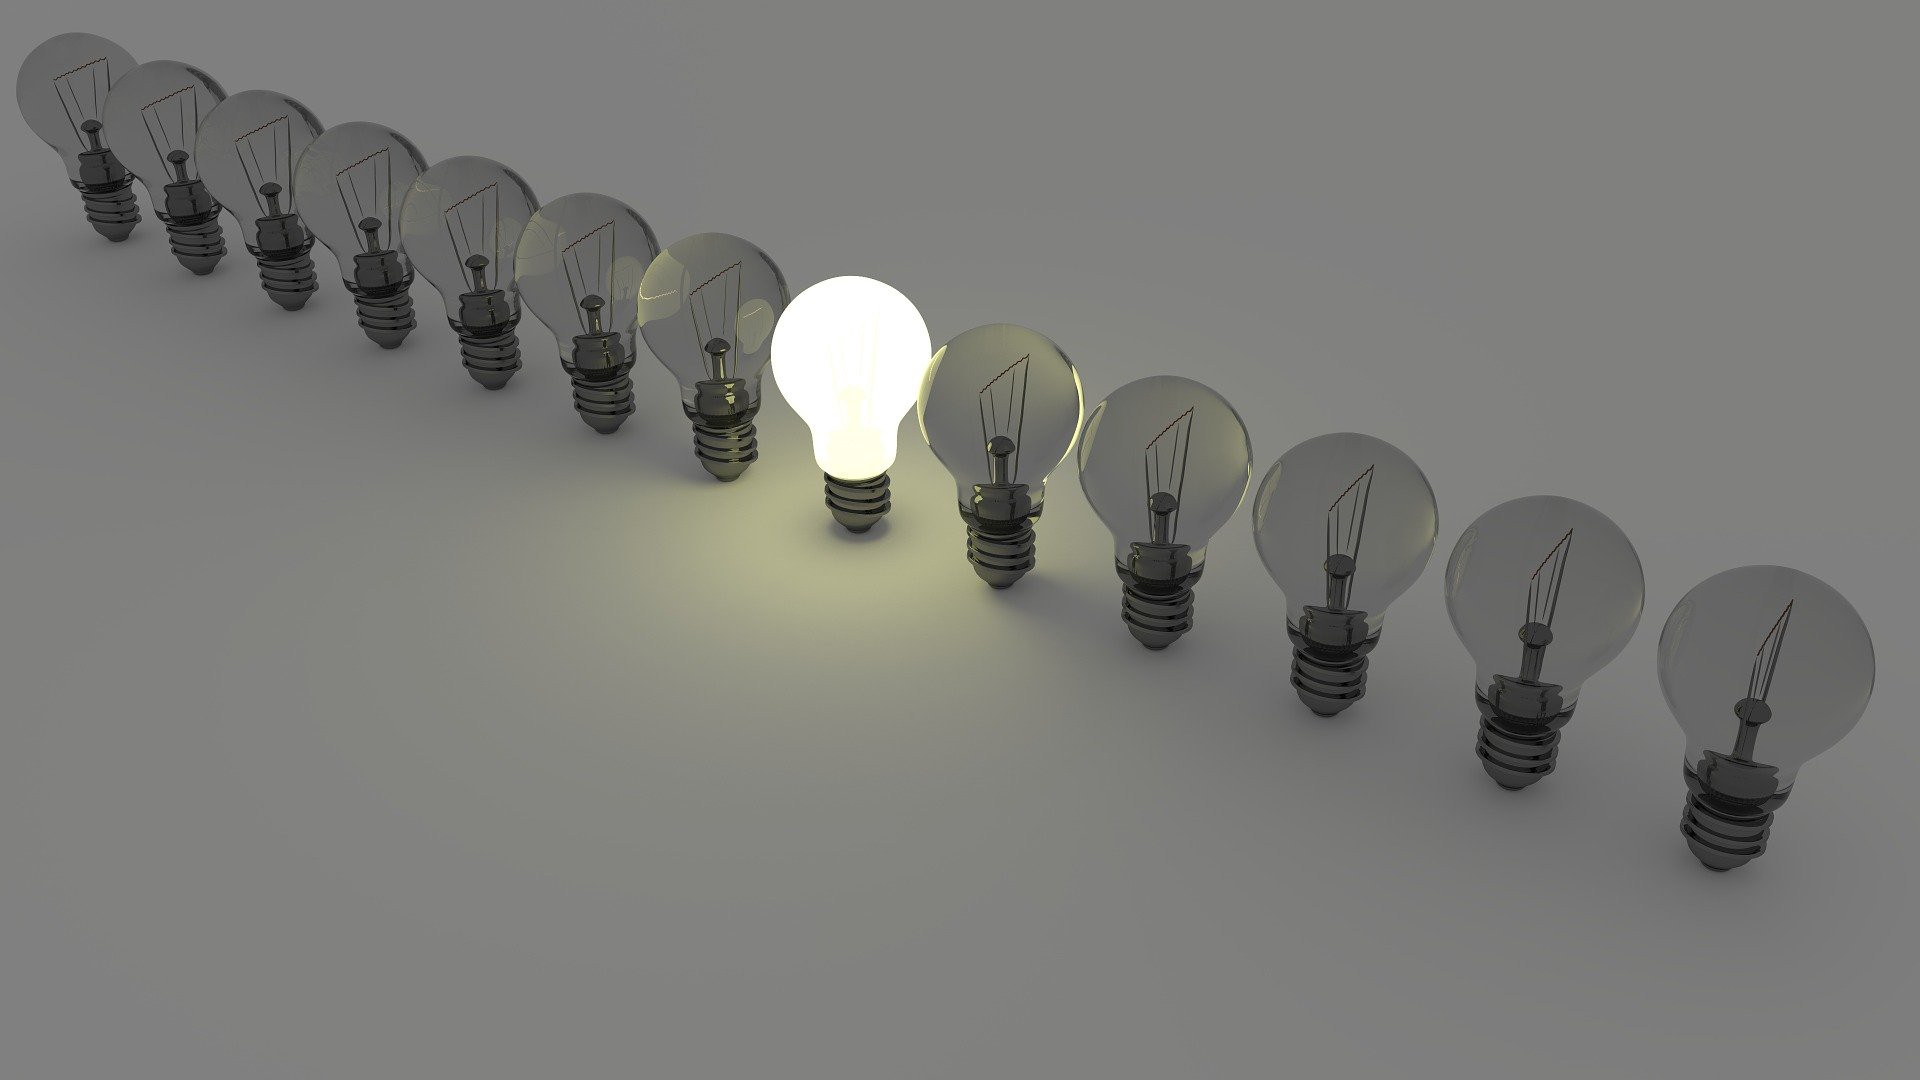 light bulbs, ideas